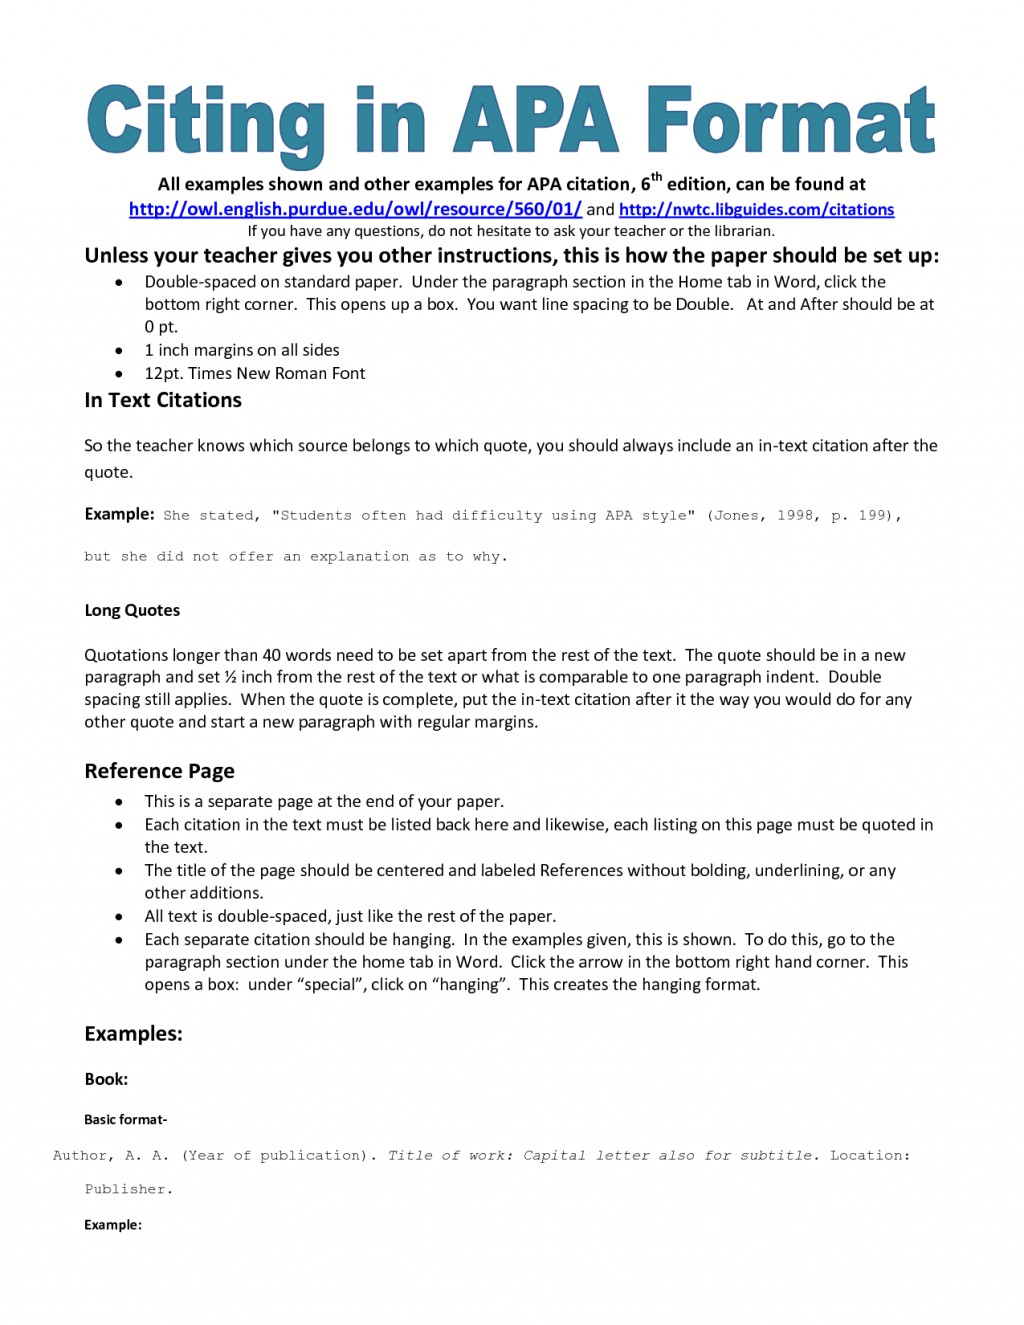 006 Apa Essay Format Breathtaking Research Paper Reference Page Sample Word Running Head Large